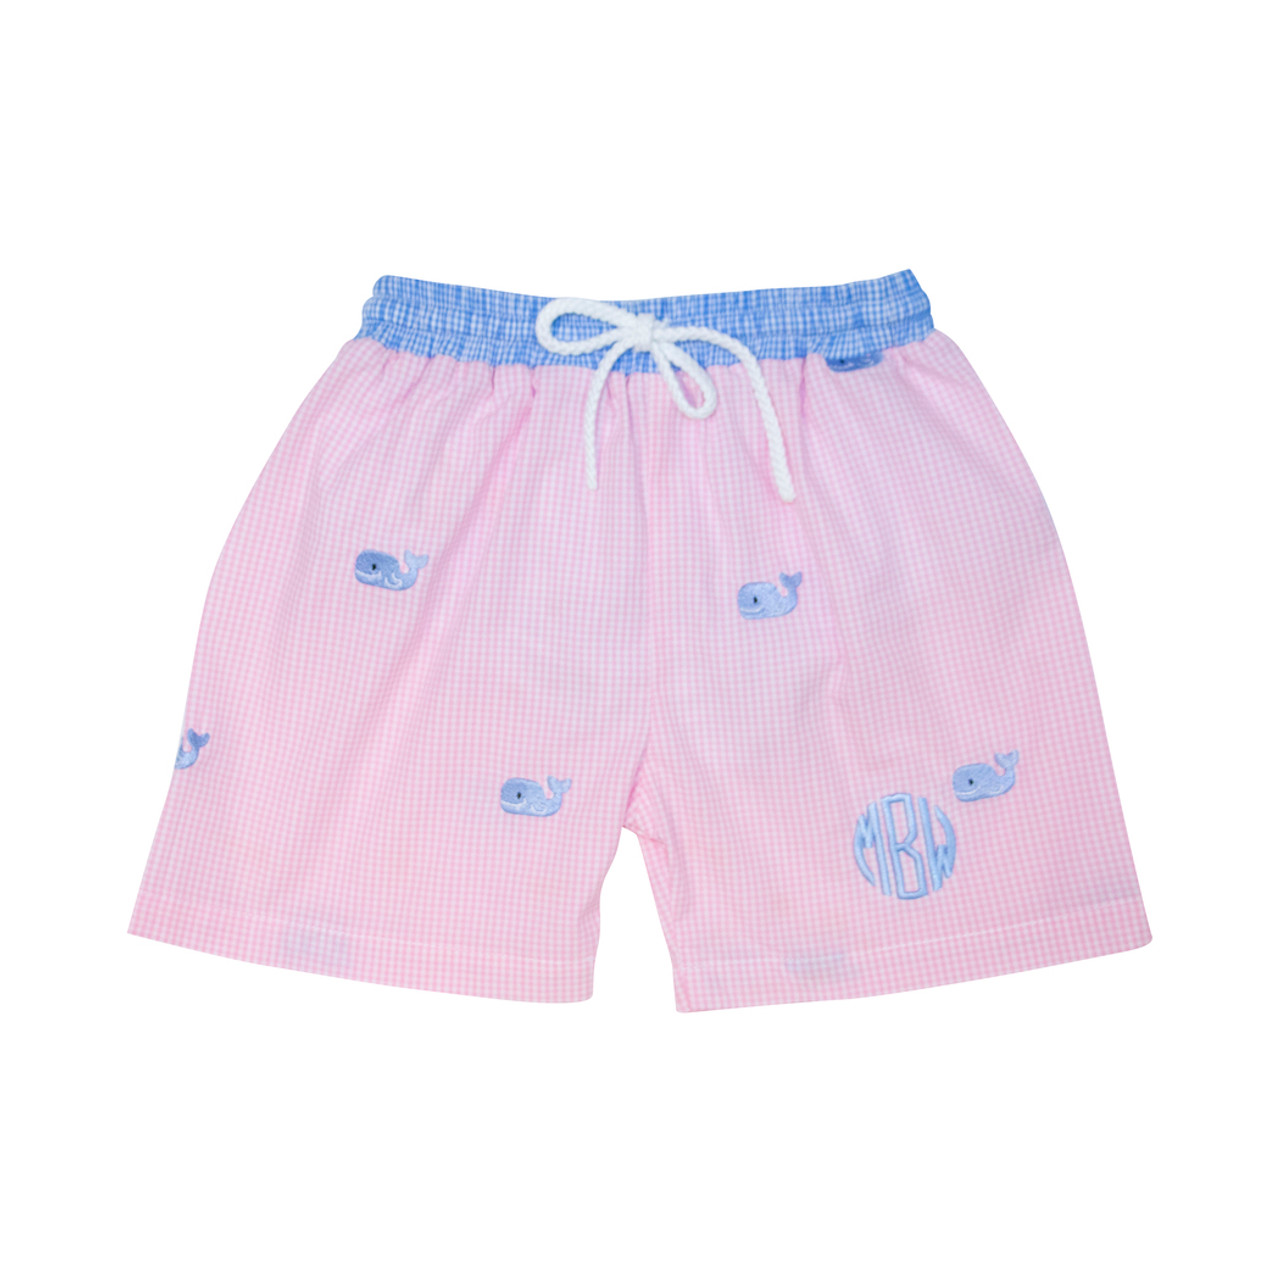 b725c8184e Pink Gingham Embroidered Whale Swim Trunks - Cecil and Lou